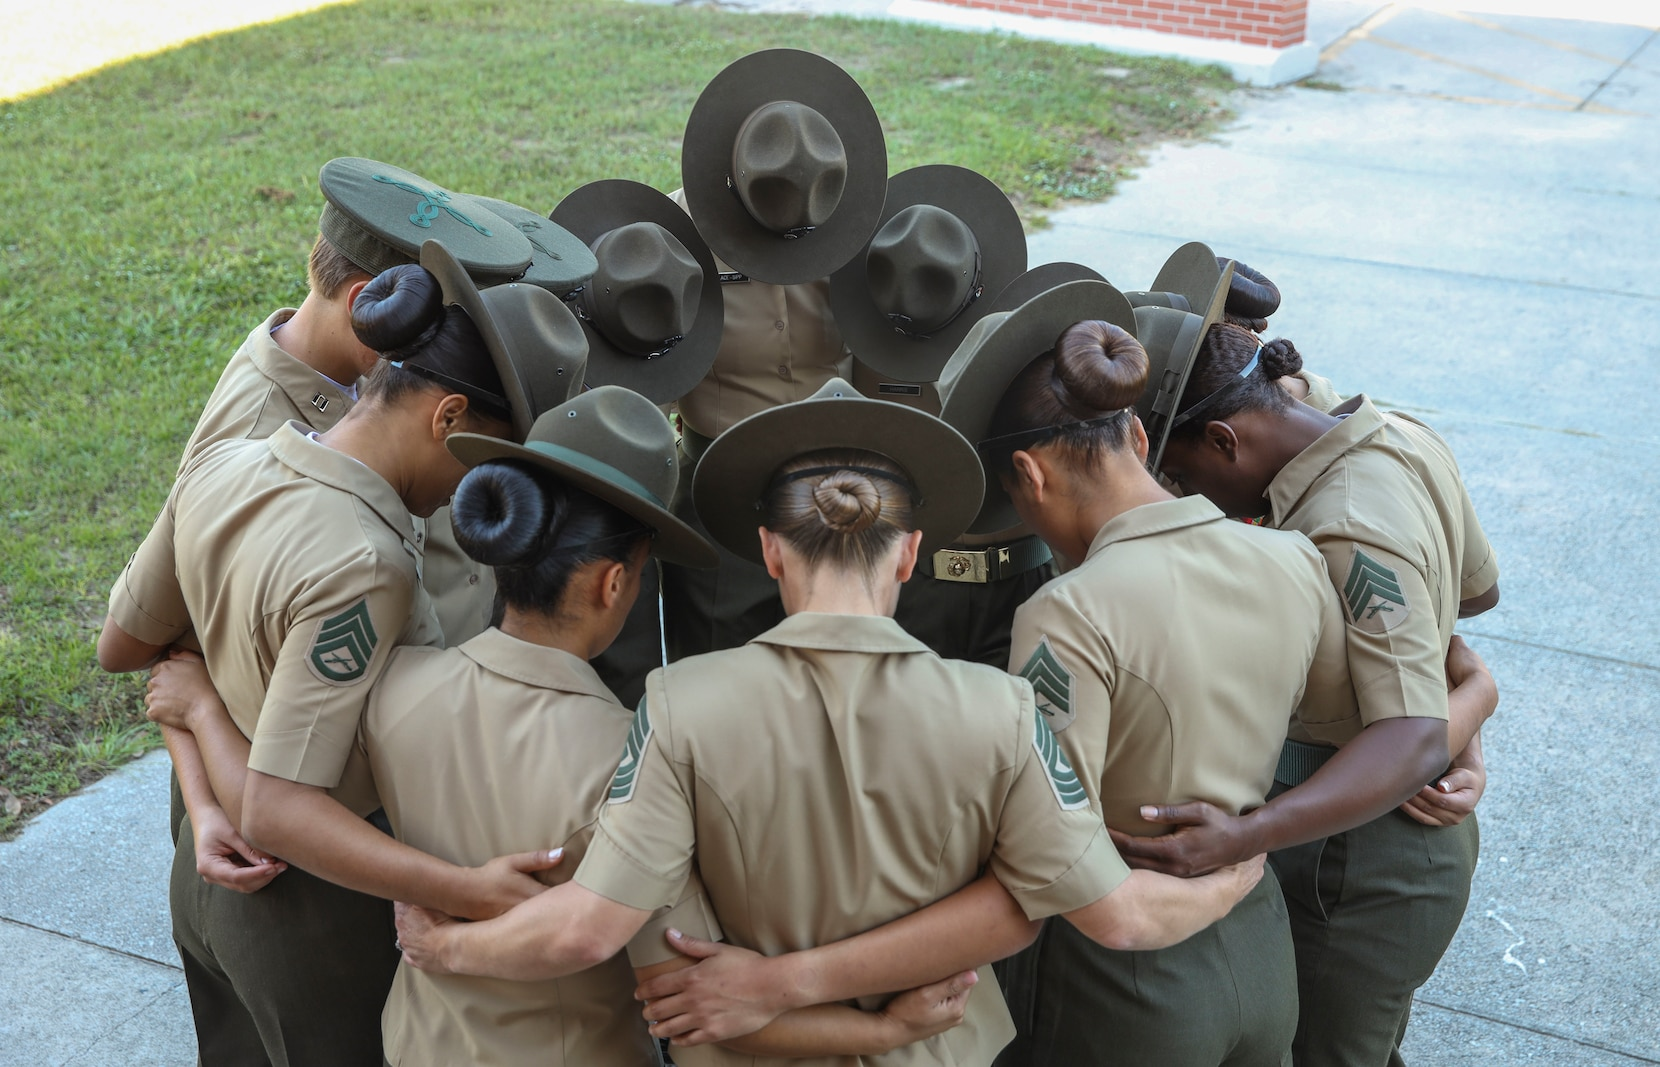 Marines with Oscar Company, 4th Recruit Training Battalion, pray before introducing themselves to their new platoons on Marine Corps Recruit Depot Parris Island, S.C., Oct. 16, 2021. Oscar Company will spend Forming Day learning the rules and regulations of recruit training. (U.S. Marine Corps photo by Lance Cpl. Ryan Hageali)